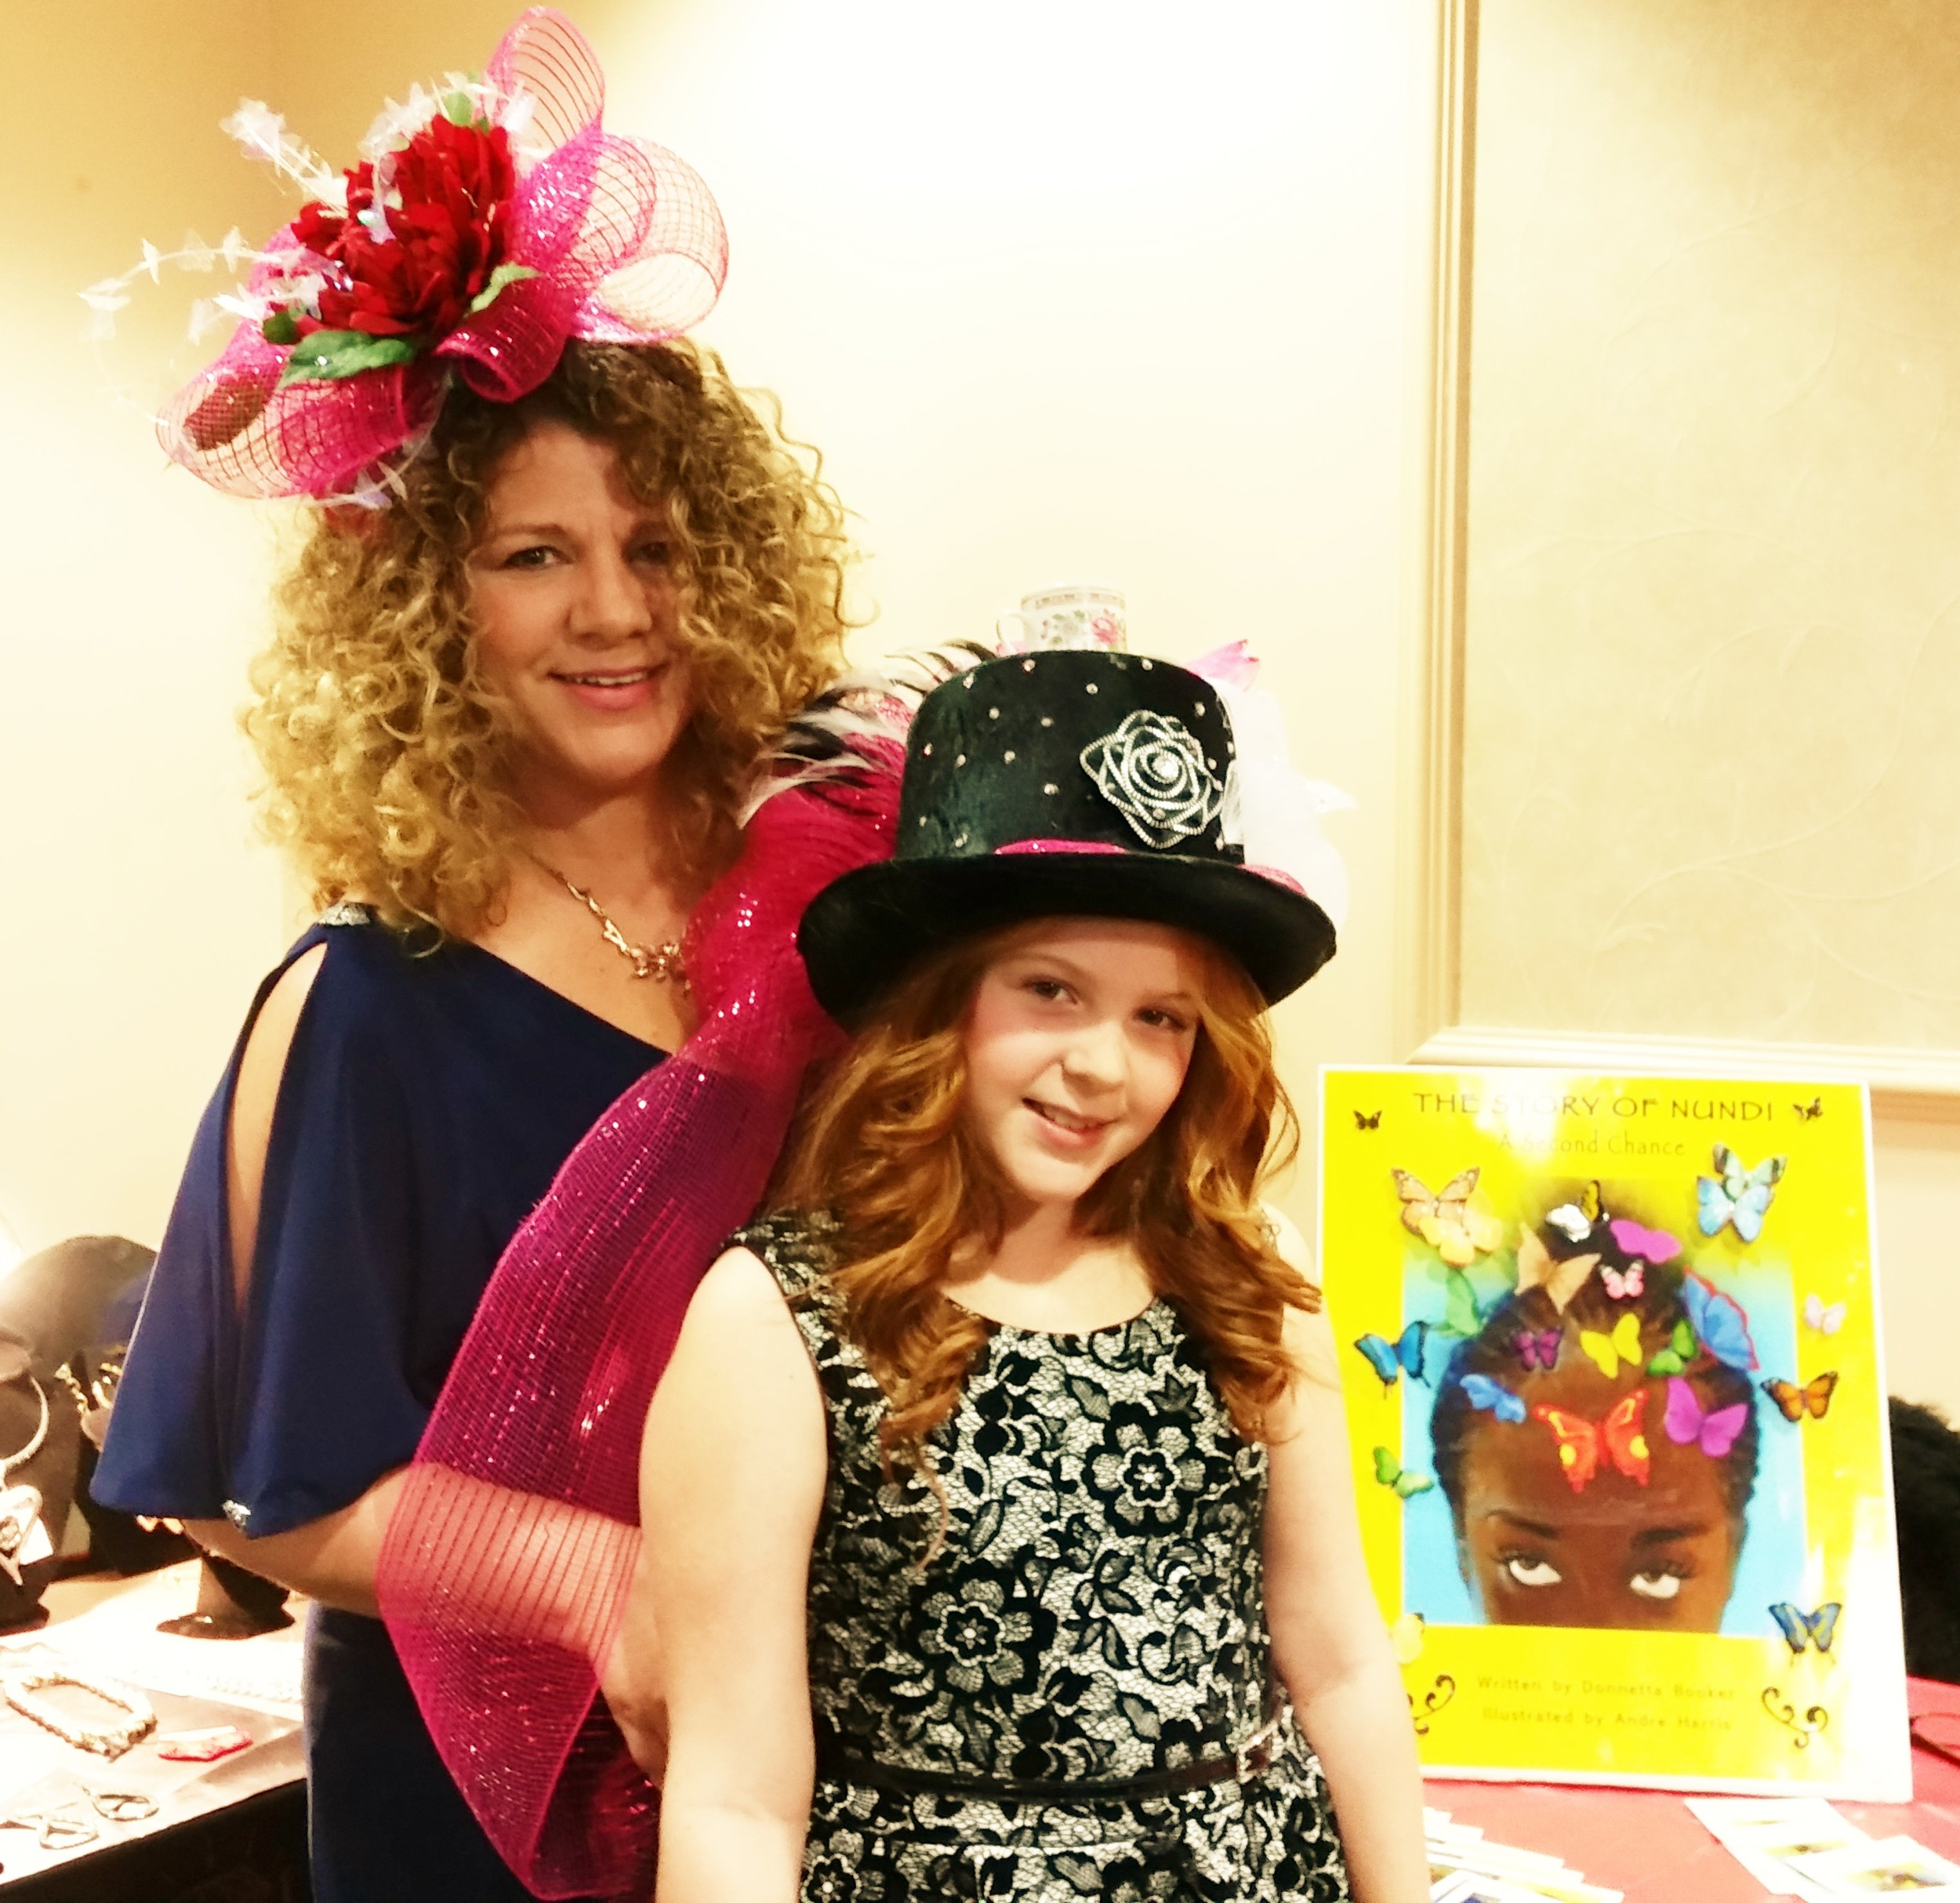 Adorable! Mother and daughter in cool-crazy hats. Nundi photo-bombed. LOL!!!